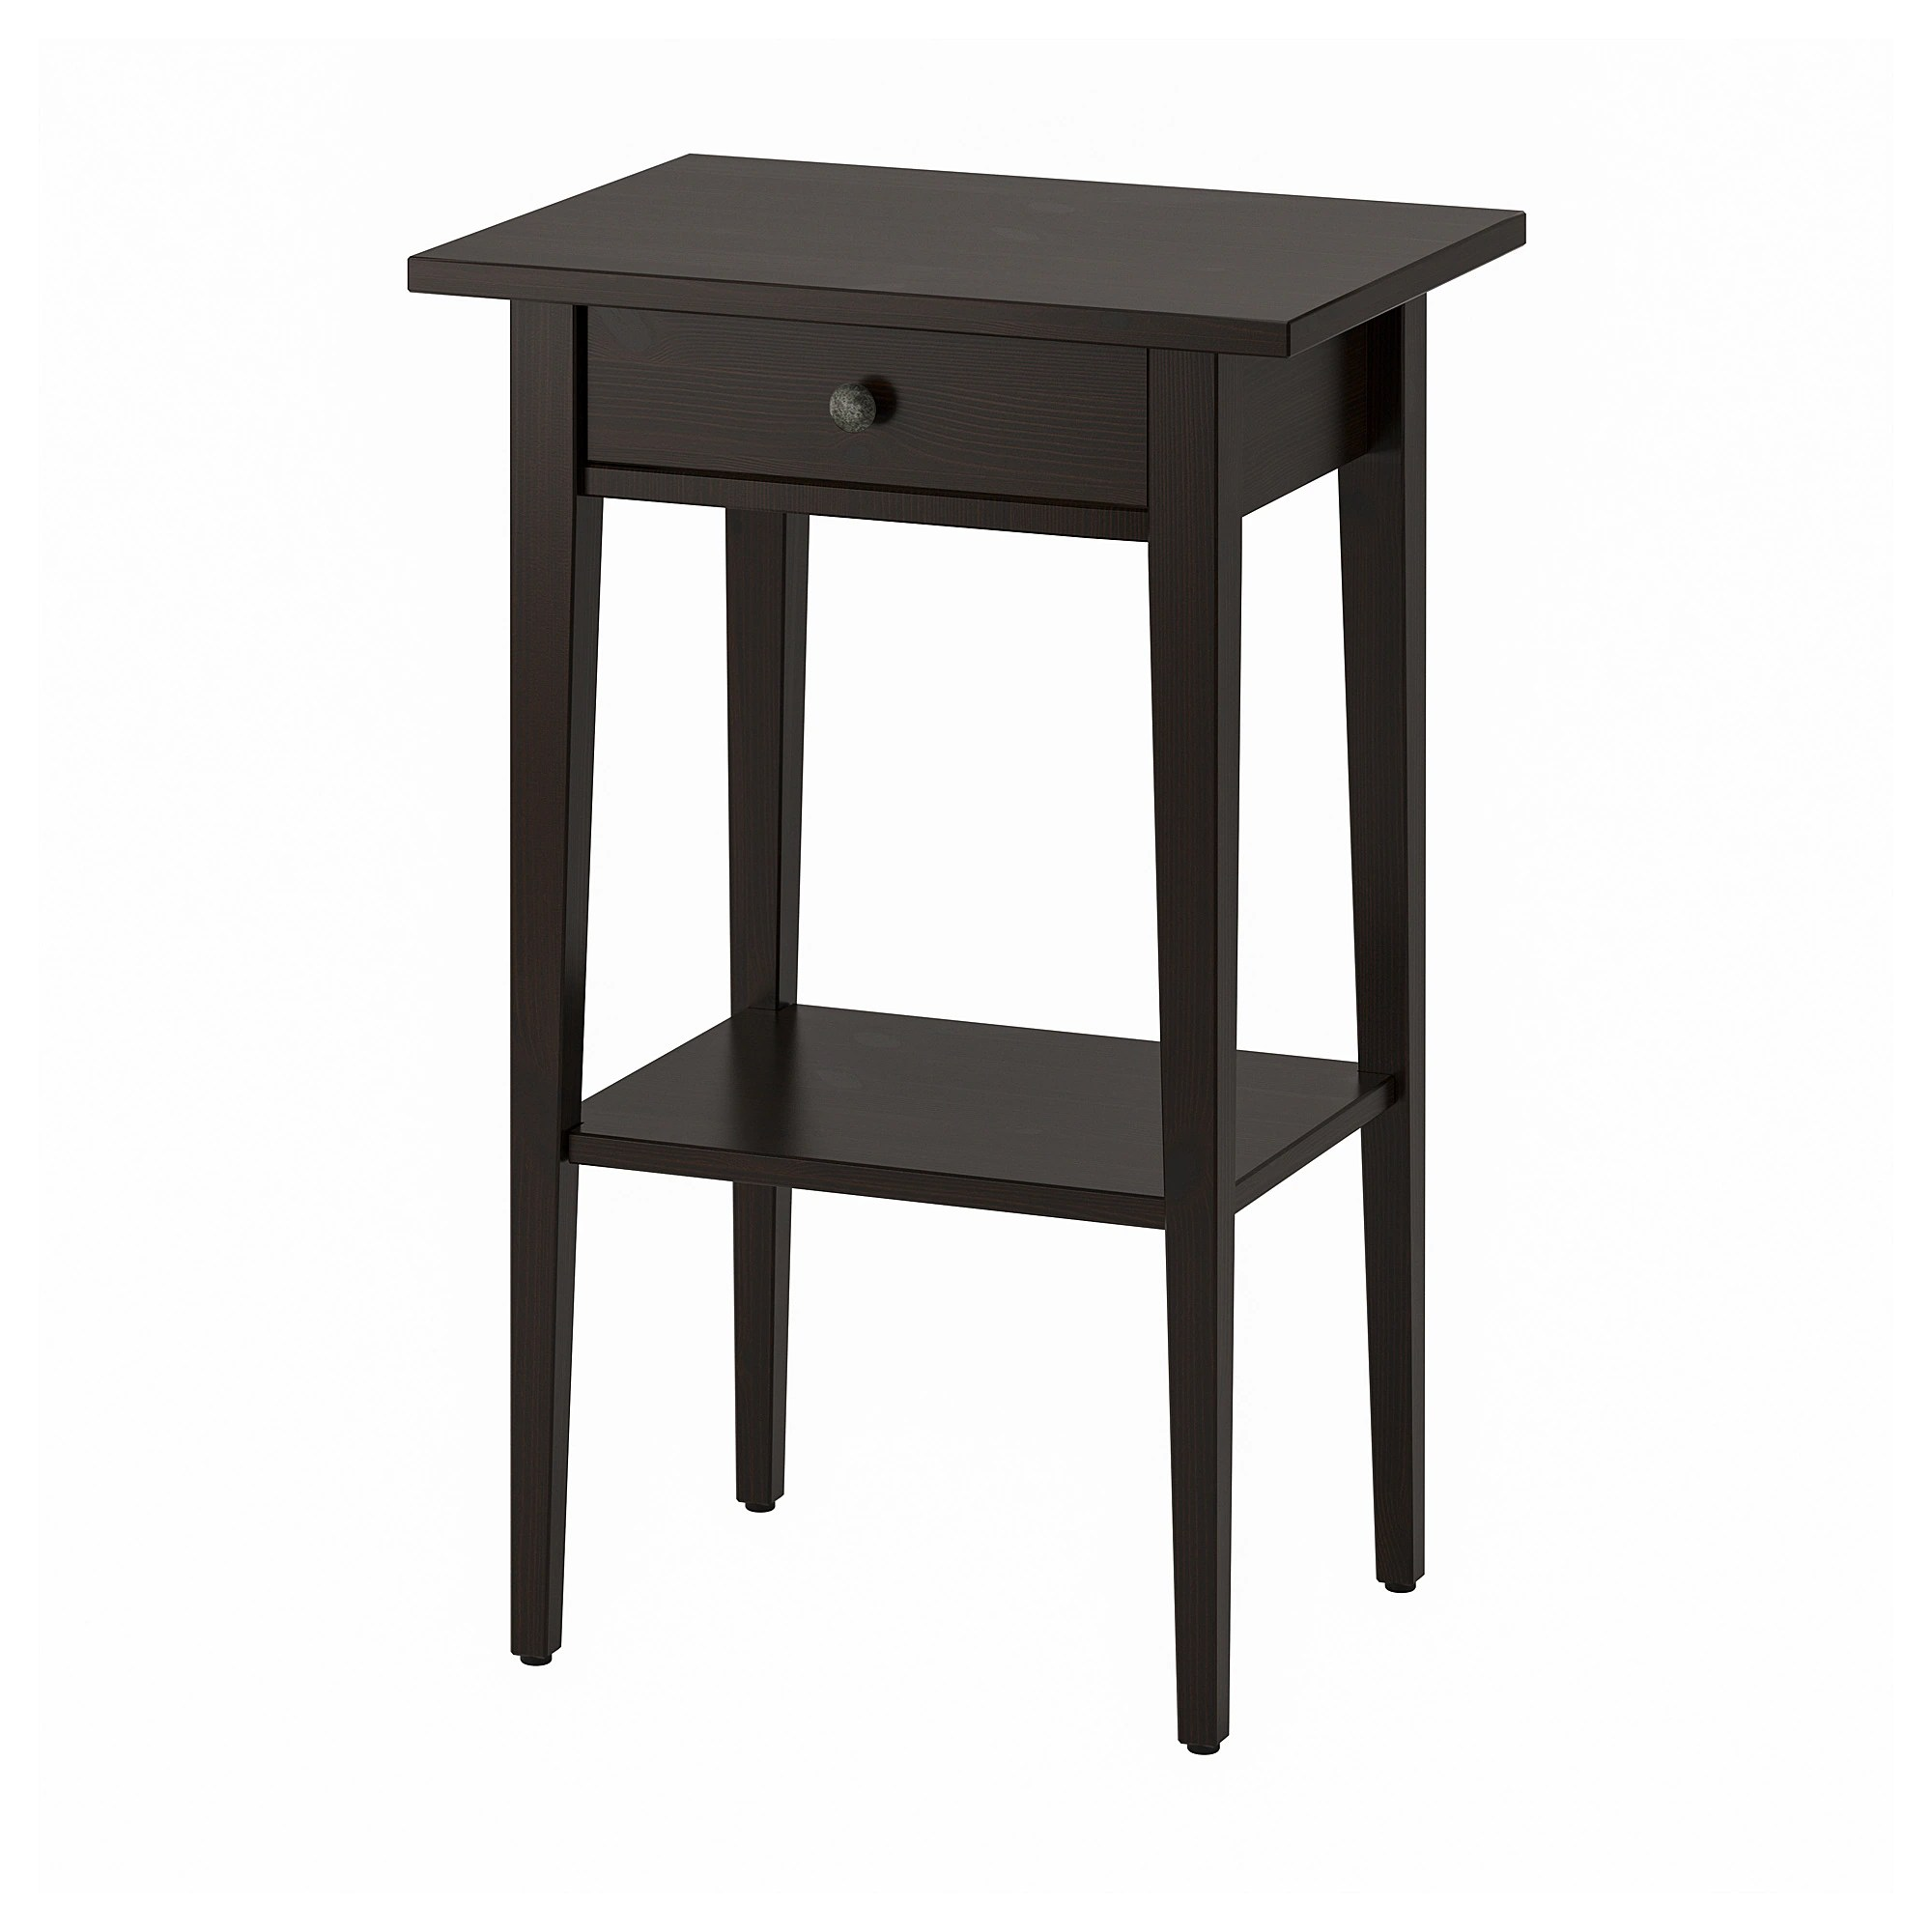 Ikea Table Hemnes Nightstand Black Brown